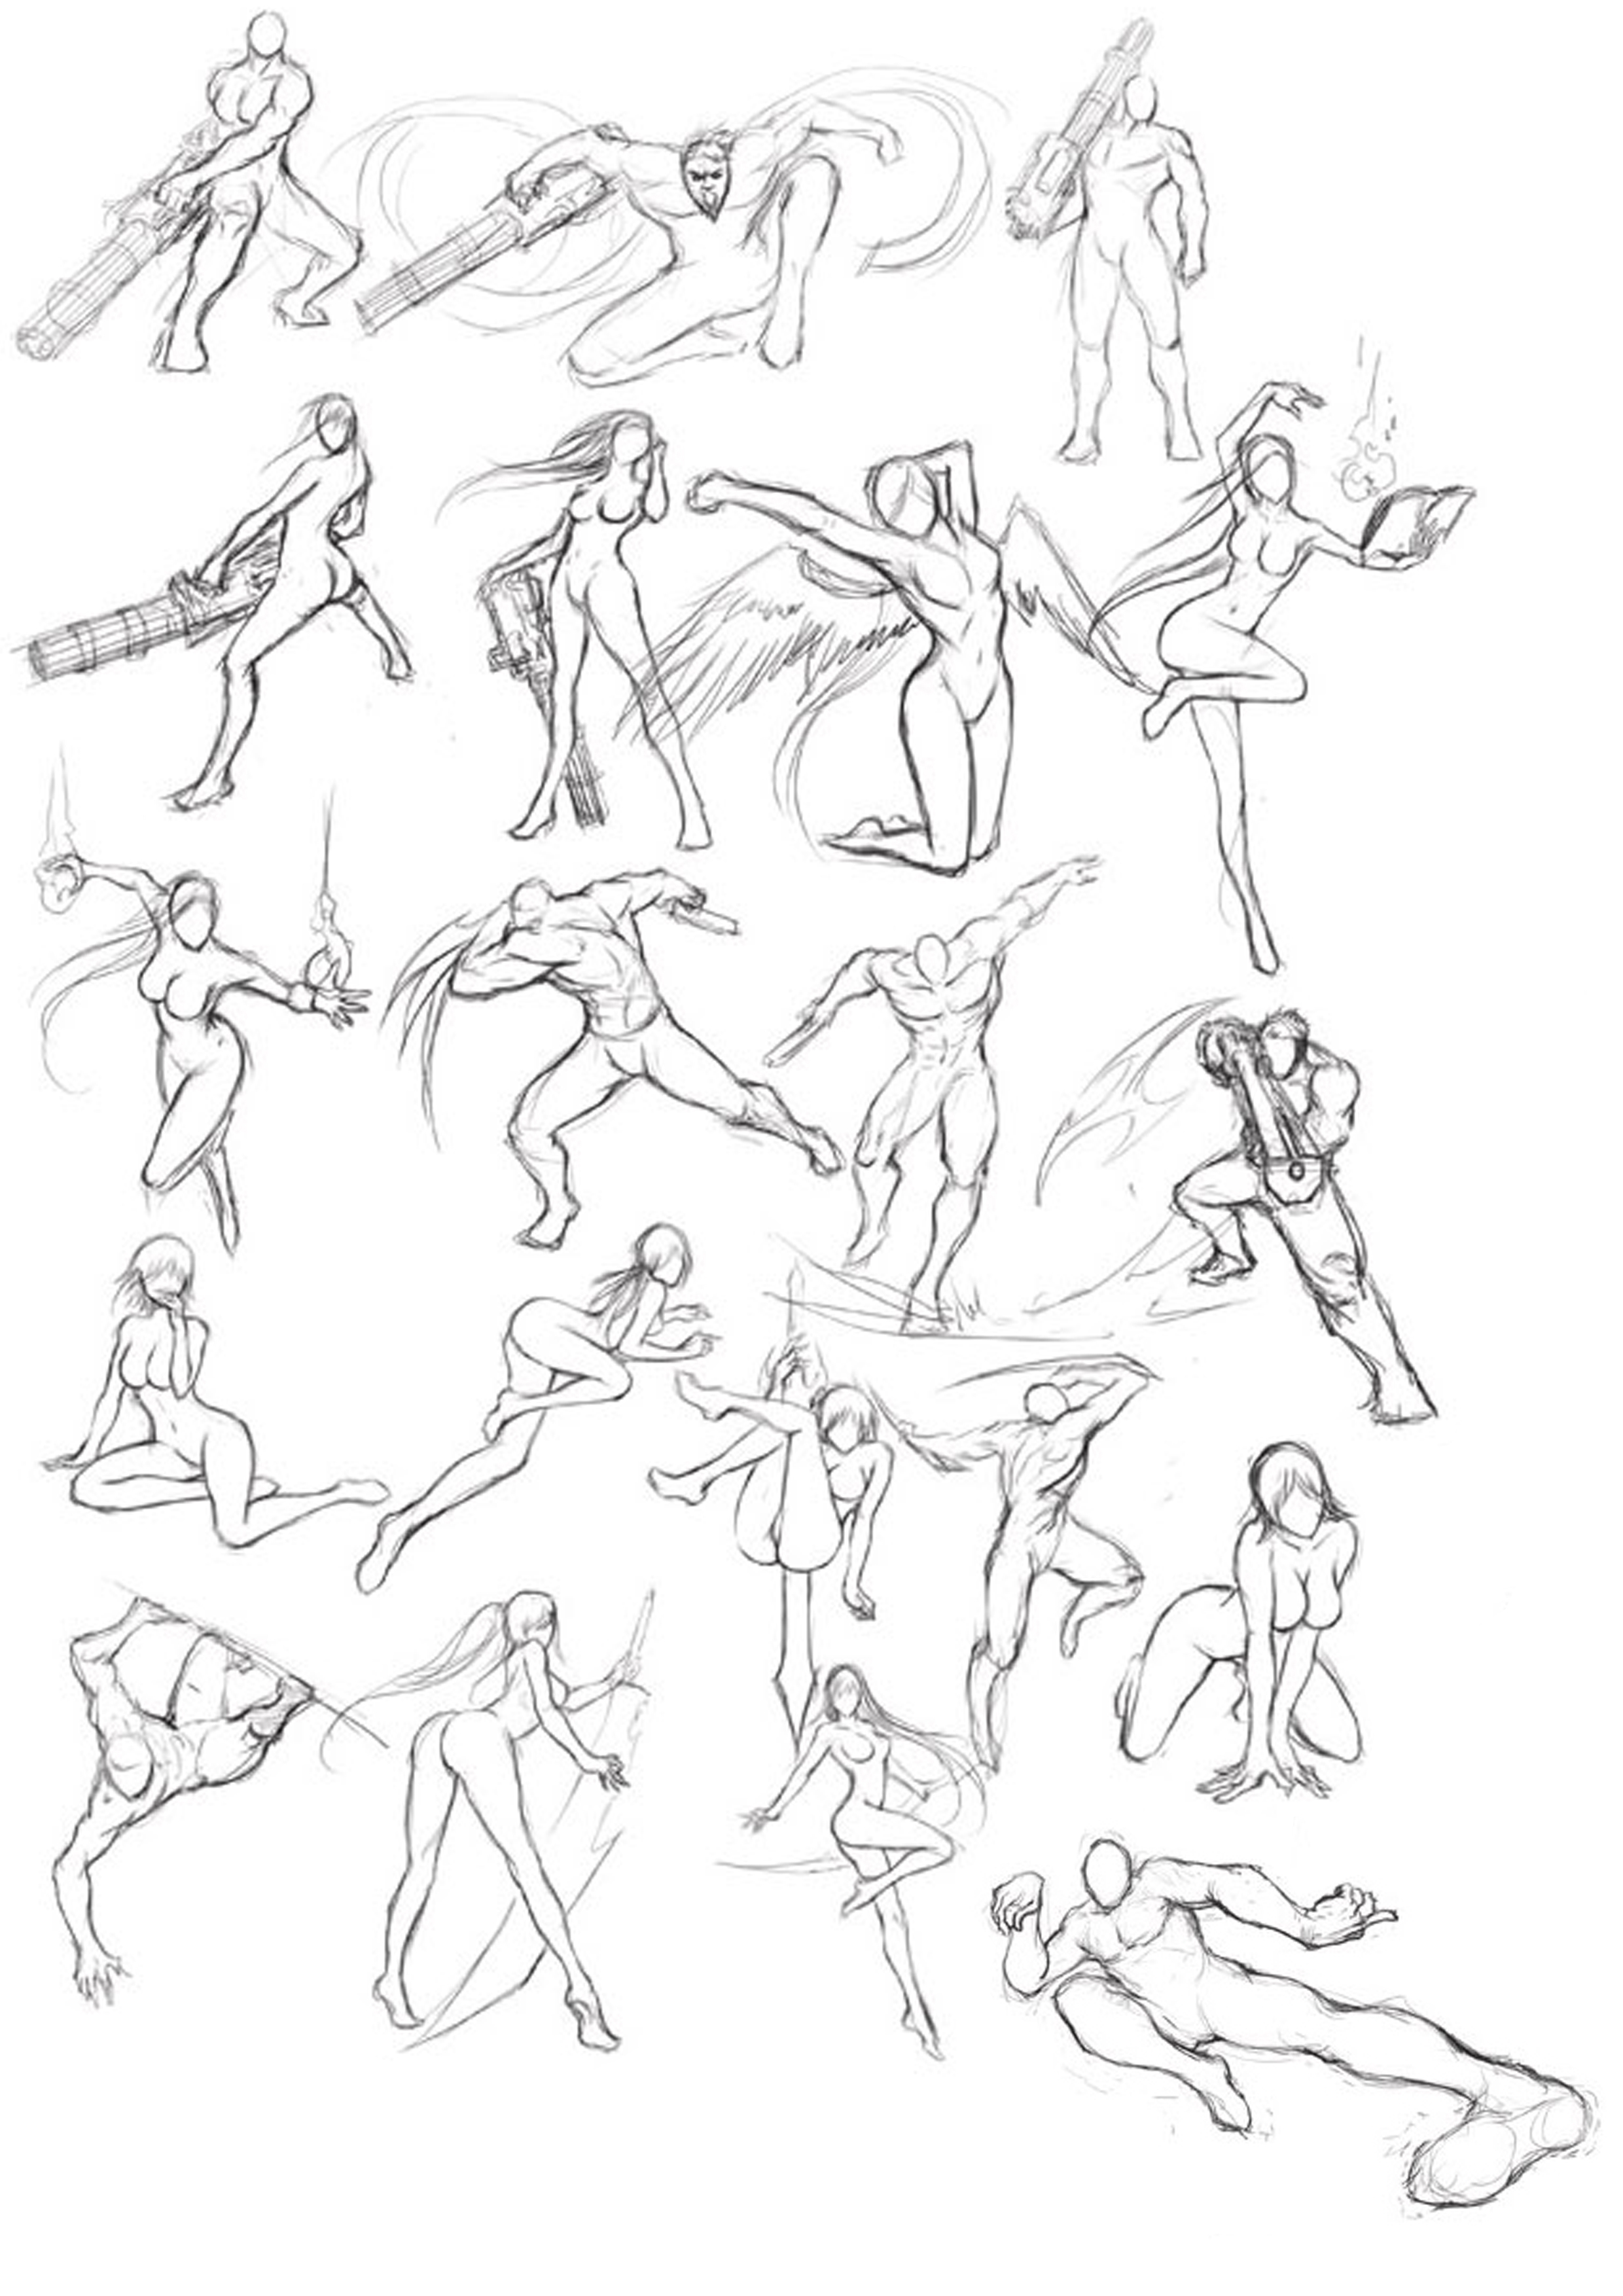 2480x3508 Martial Arts Posture I Learning How To Draw